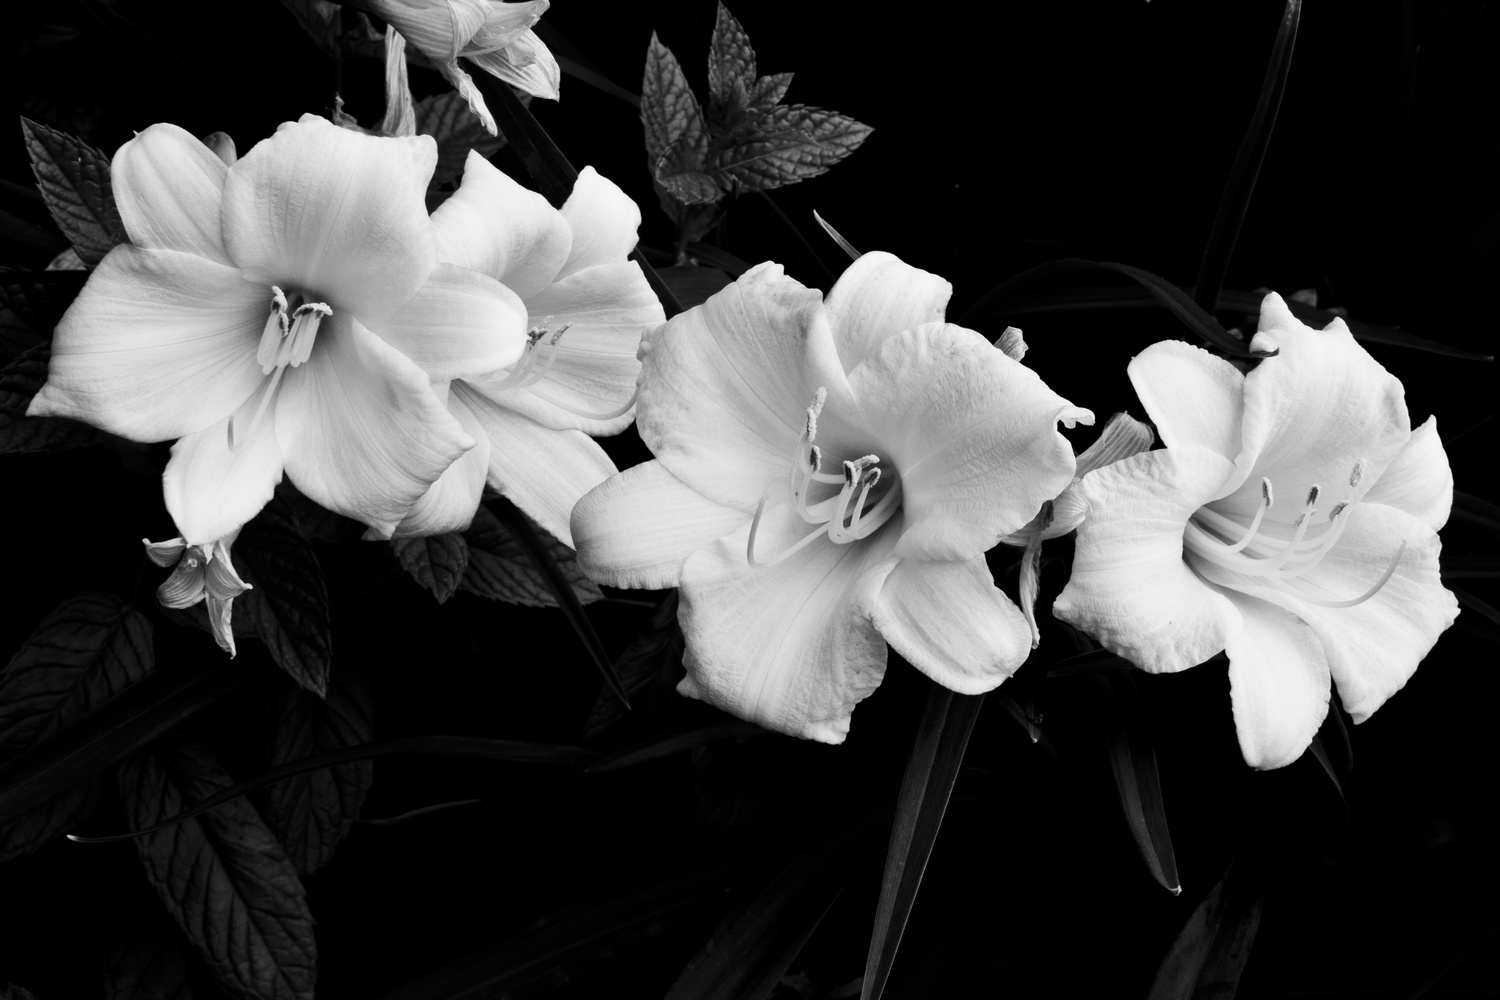 Lilies by James Jewers